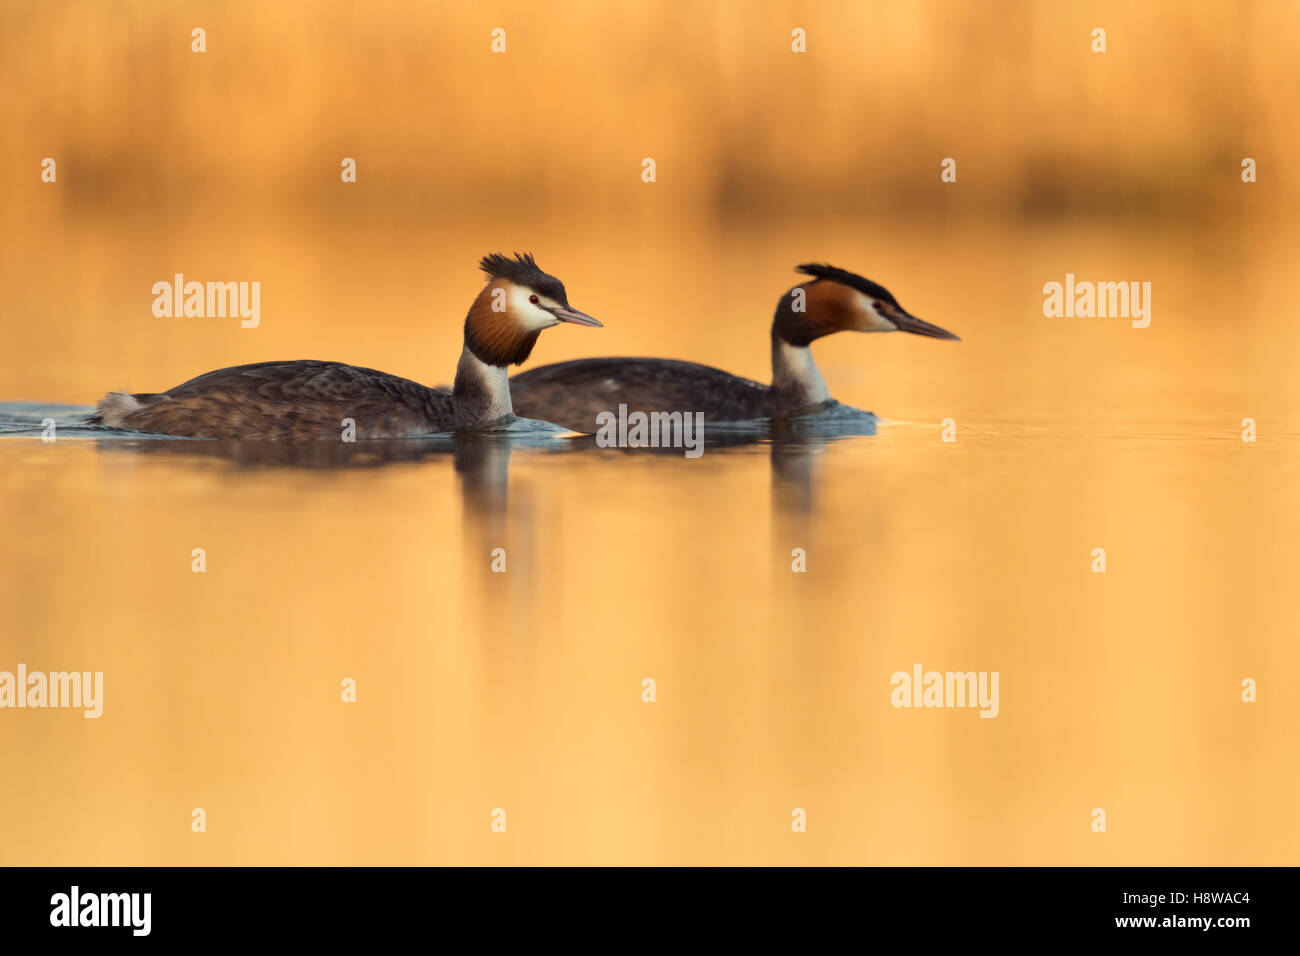 Great Crested Grebes ( Podiceps cristatus ), pair in breeding dress, swimming together on calm water, golden evening - Stock Image